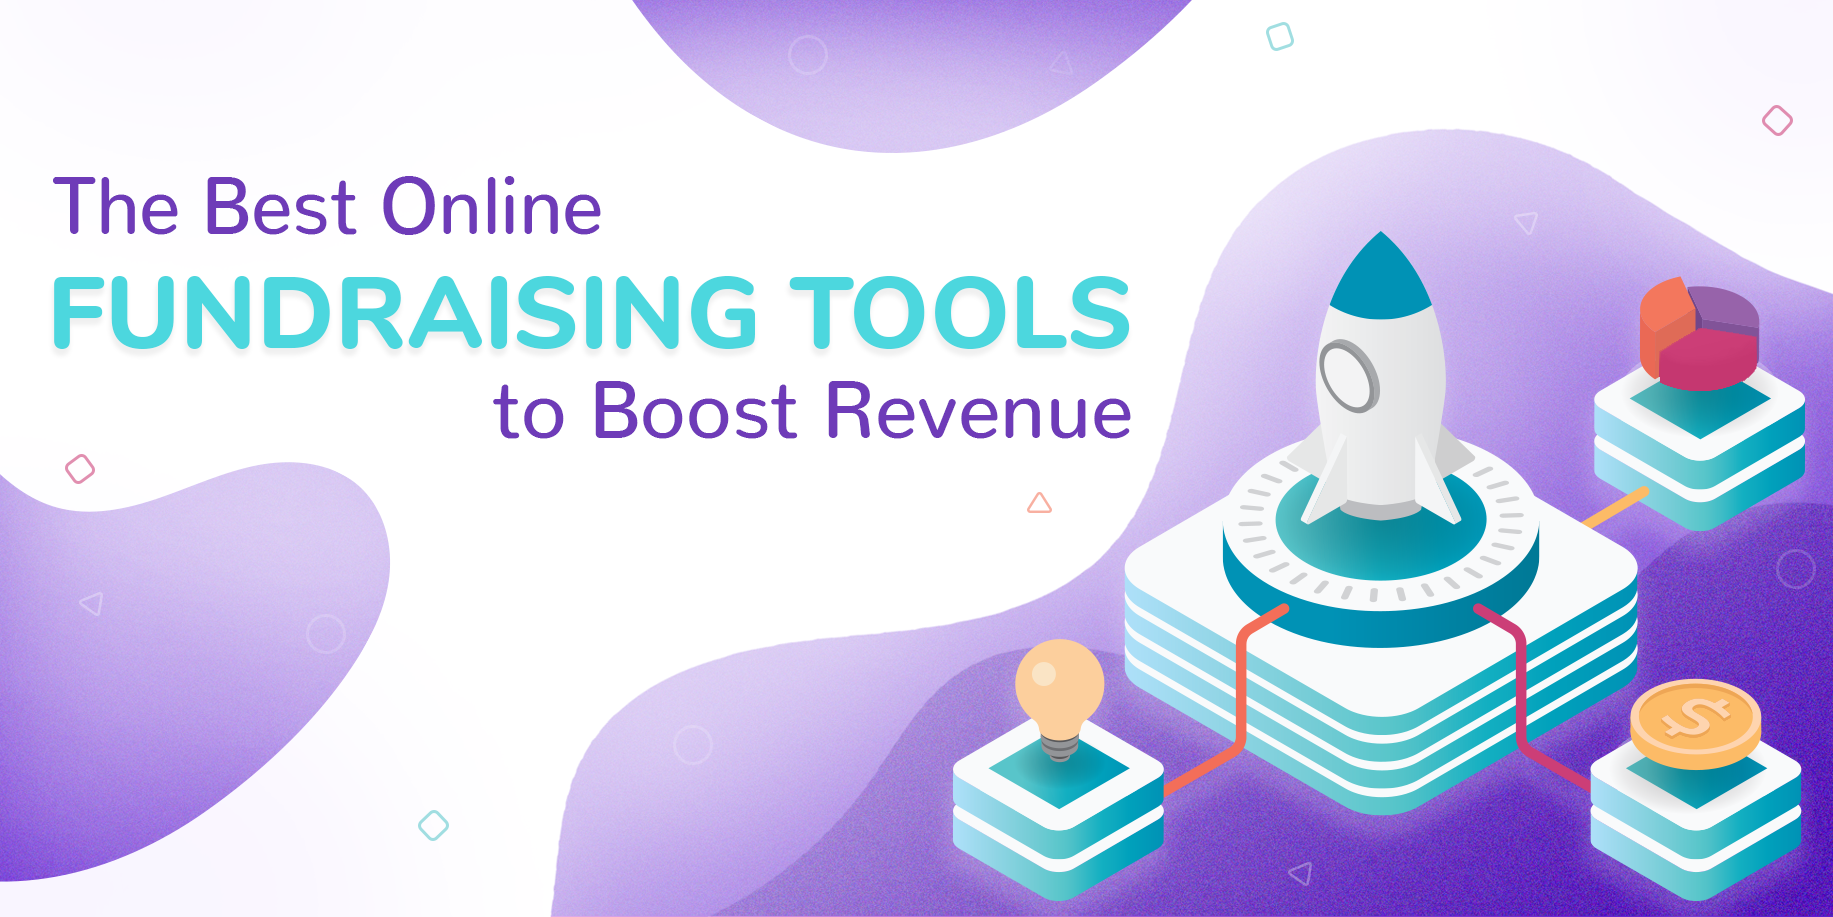 11 Best Online Fundraising Tools to Boost Revenue